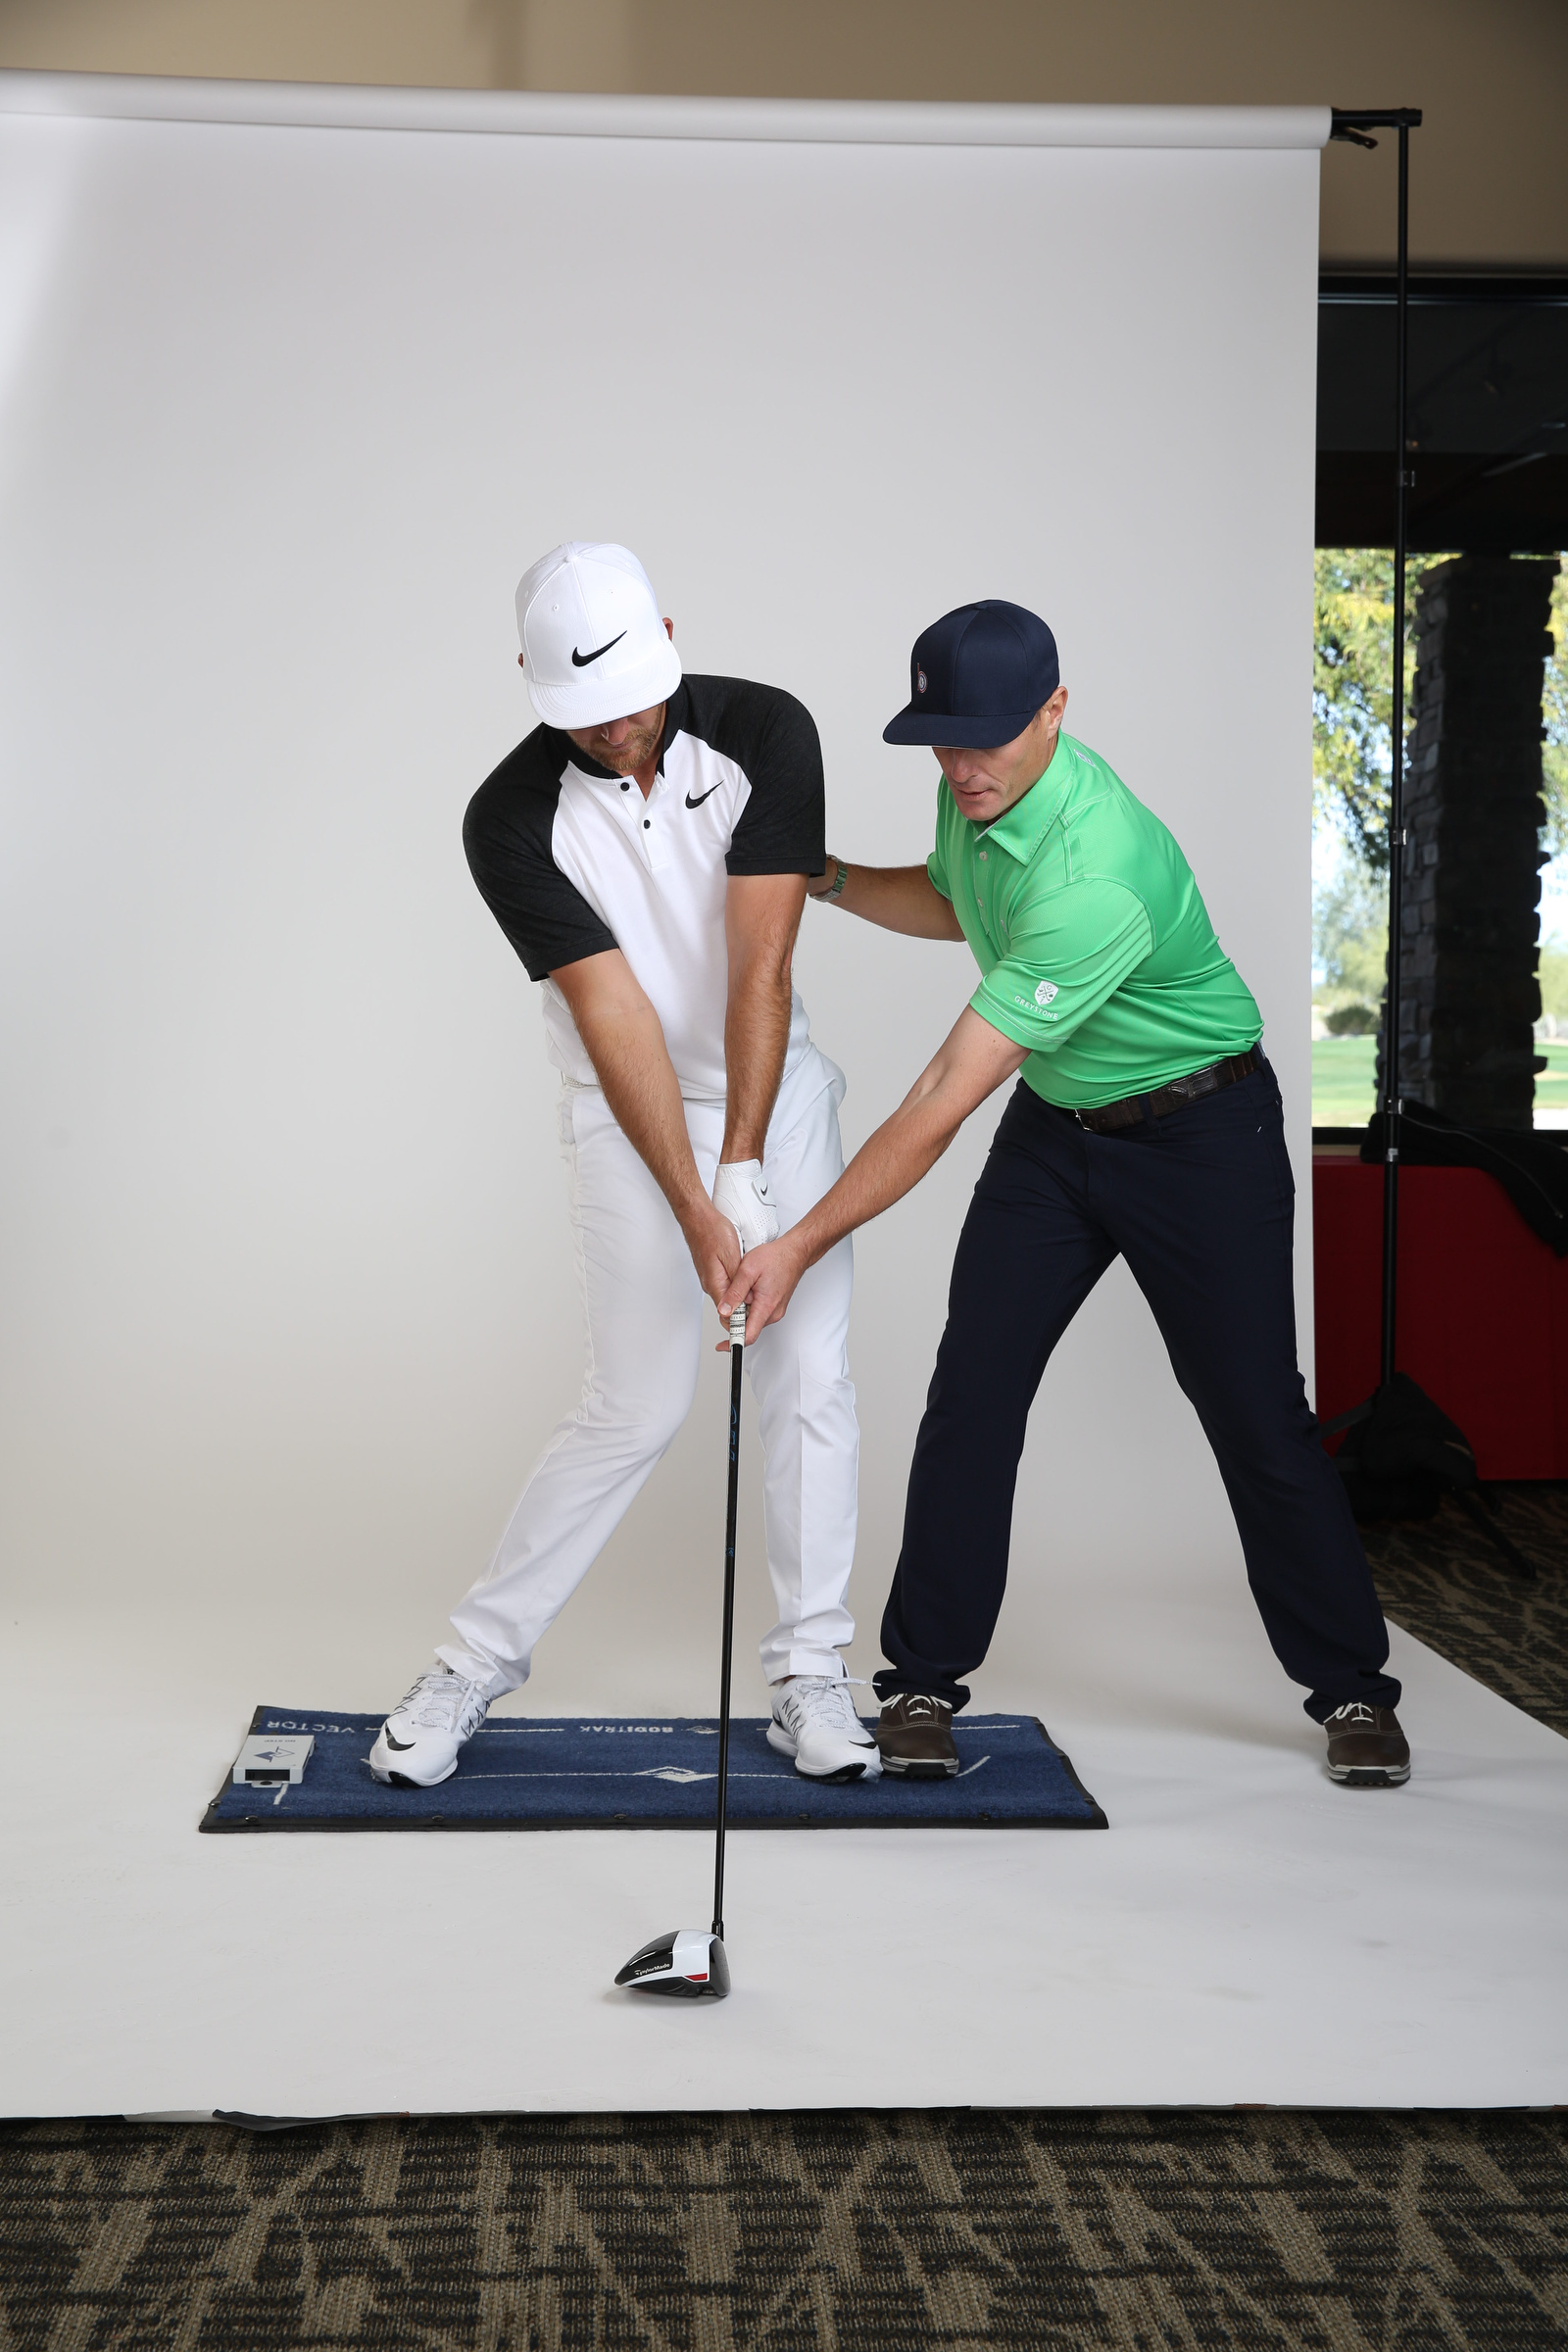 Chappell and Blackburn pose for the May 2017 GOLF Magazine cover story.